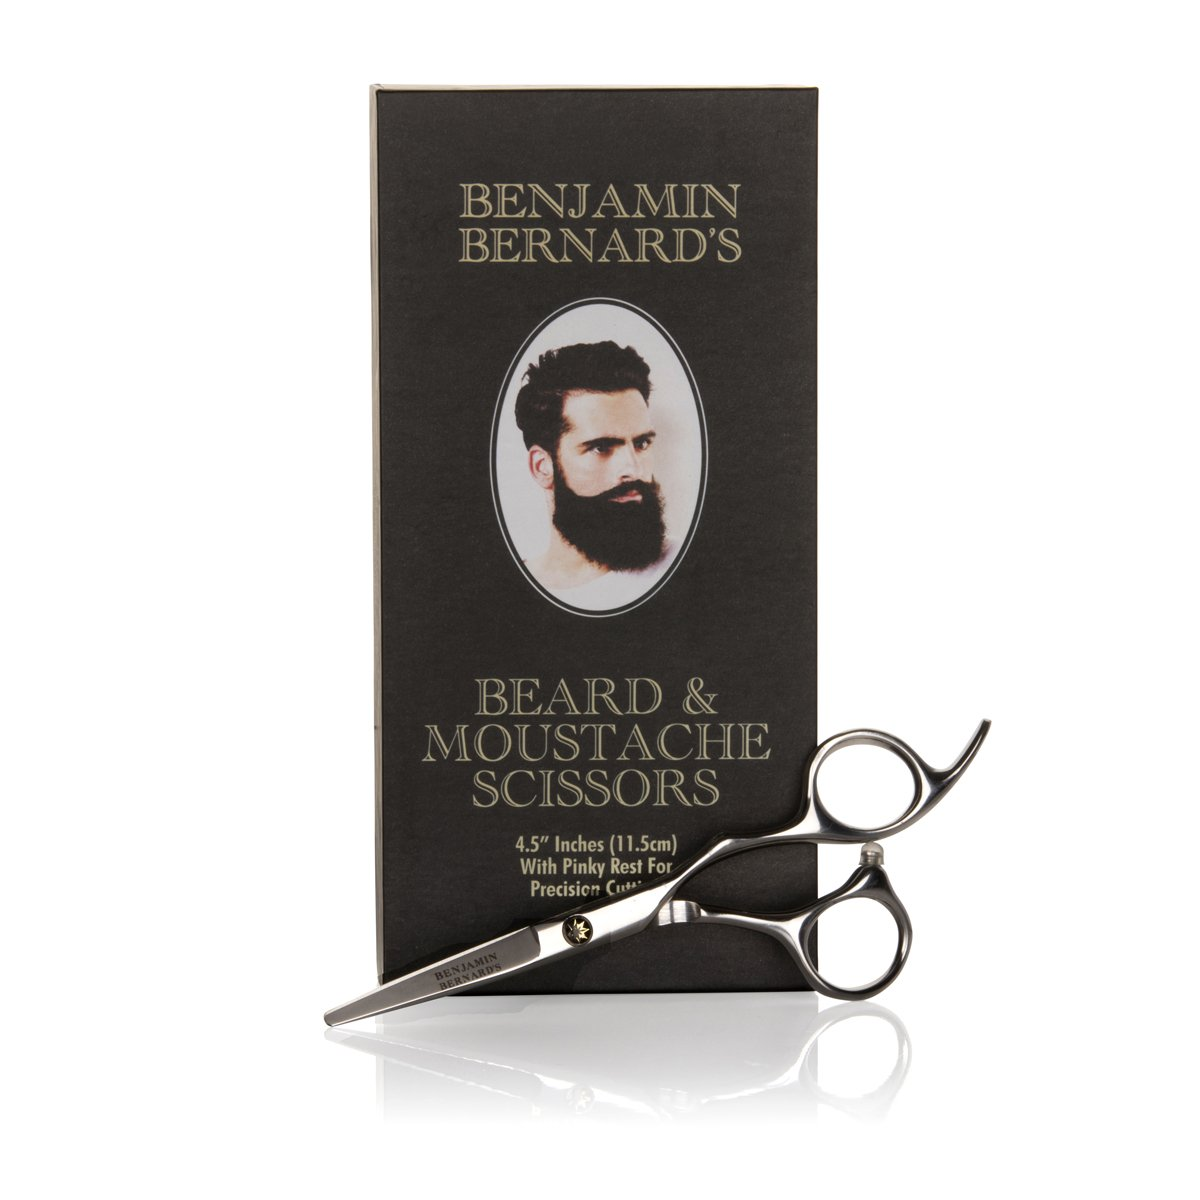 Beard Scissors - Beard and Moustache Scissors for Beard Grooming by Benjamin Bernard - Precision Facial Hair Trimming, Beard Shaping Tool - Sharp, Durable Stainless Steel Scissors - 5 in / 12.7 cm Second Glance Beauty